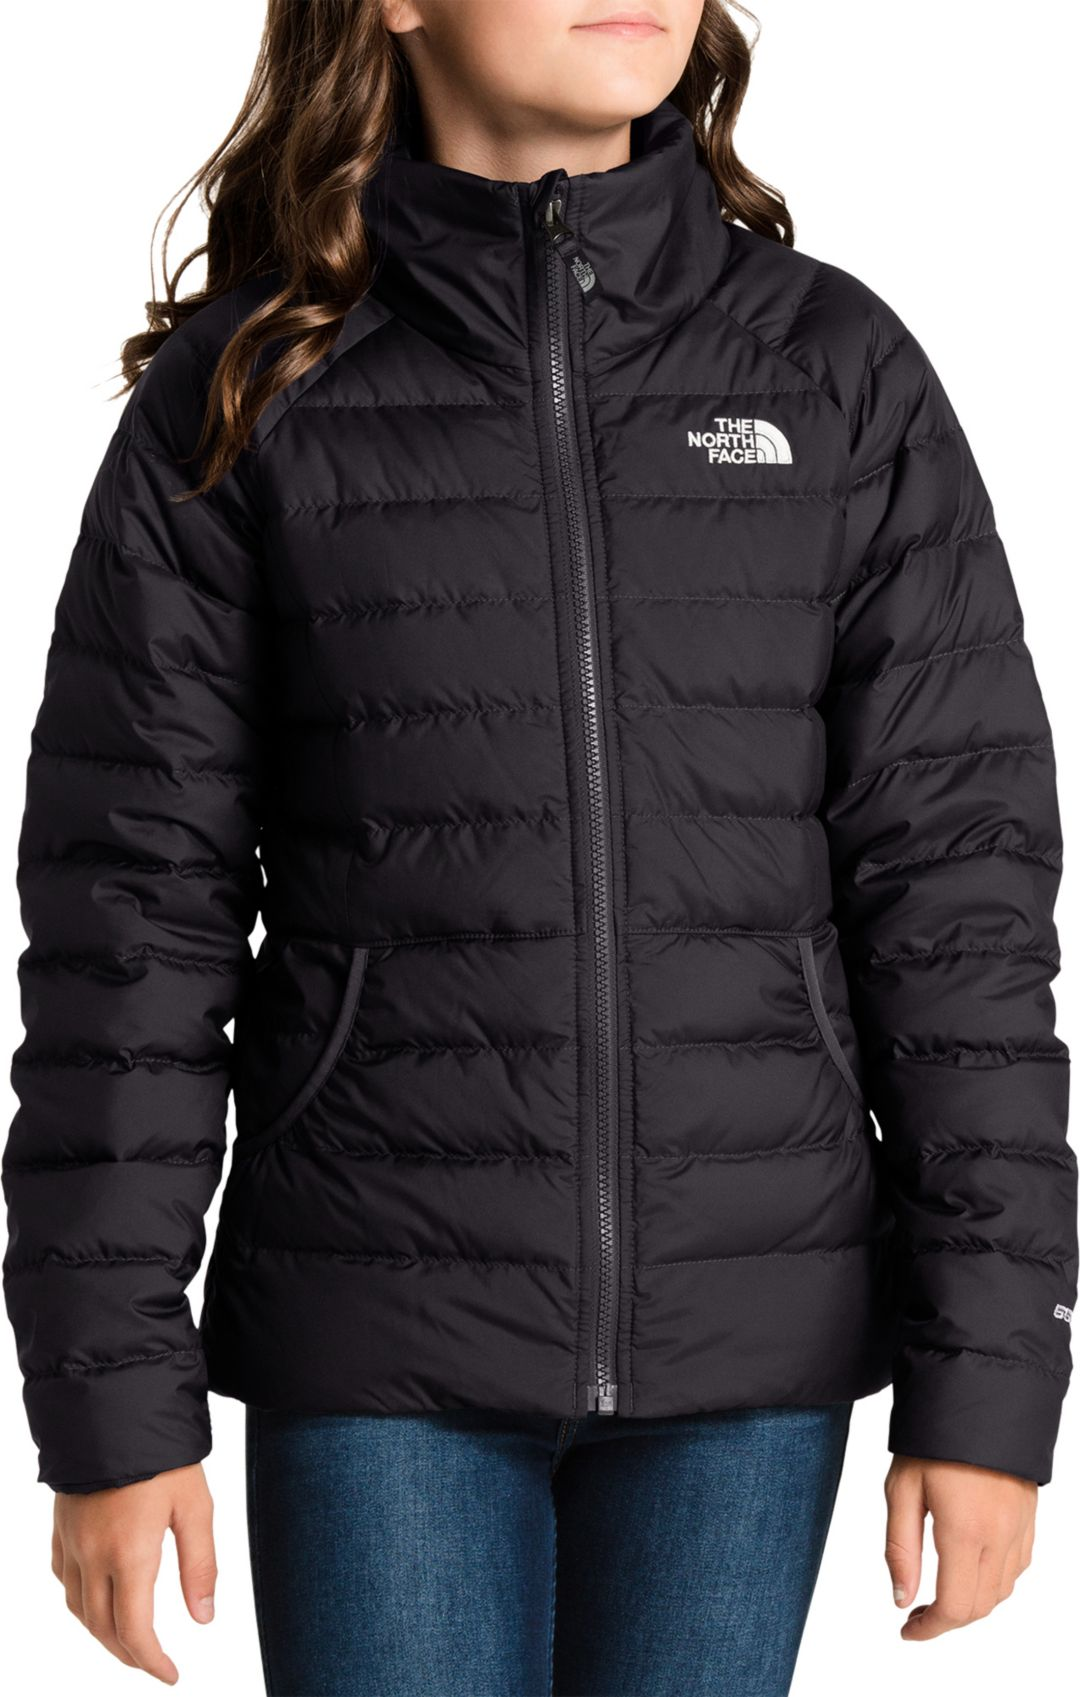 ad3ded24d The North Face Girls' Alpz Down Jacket